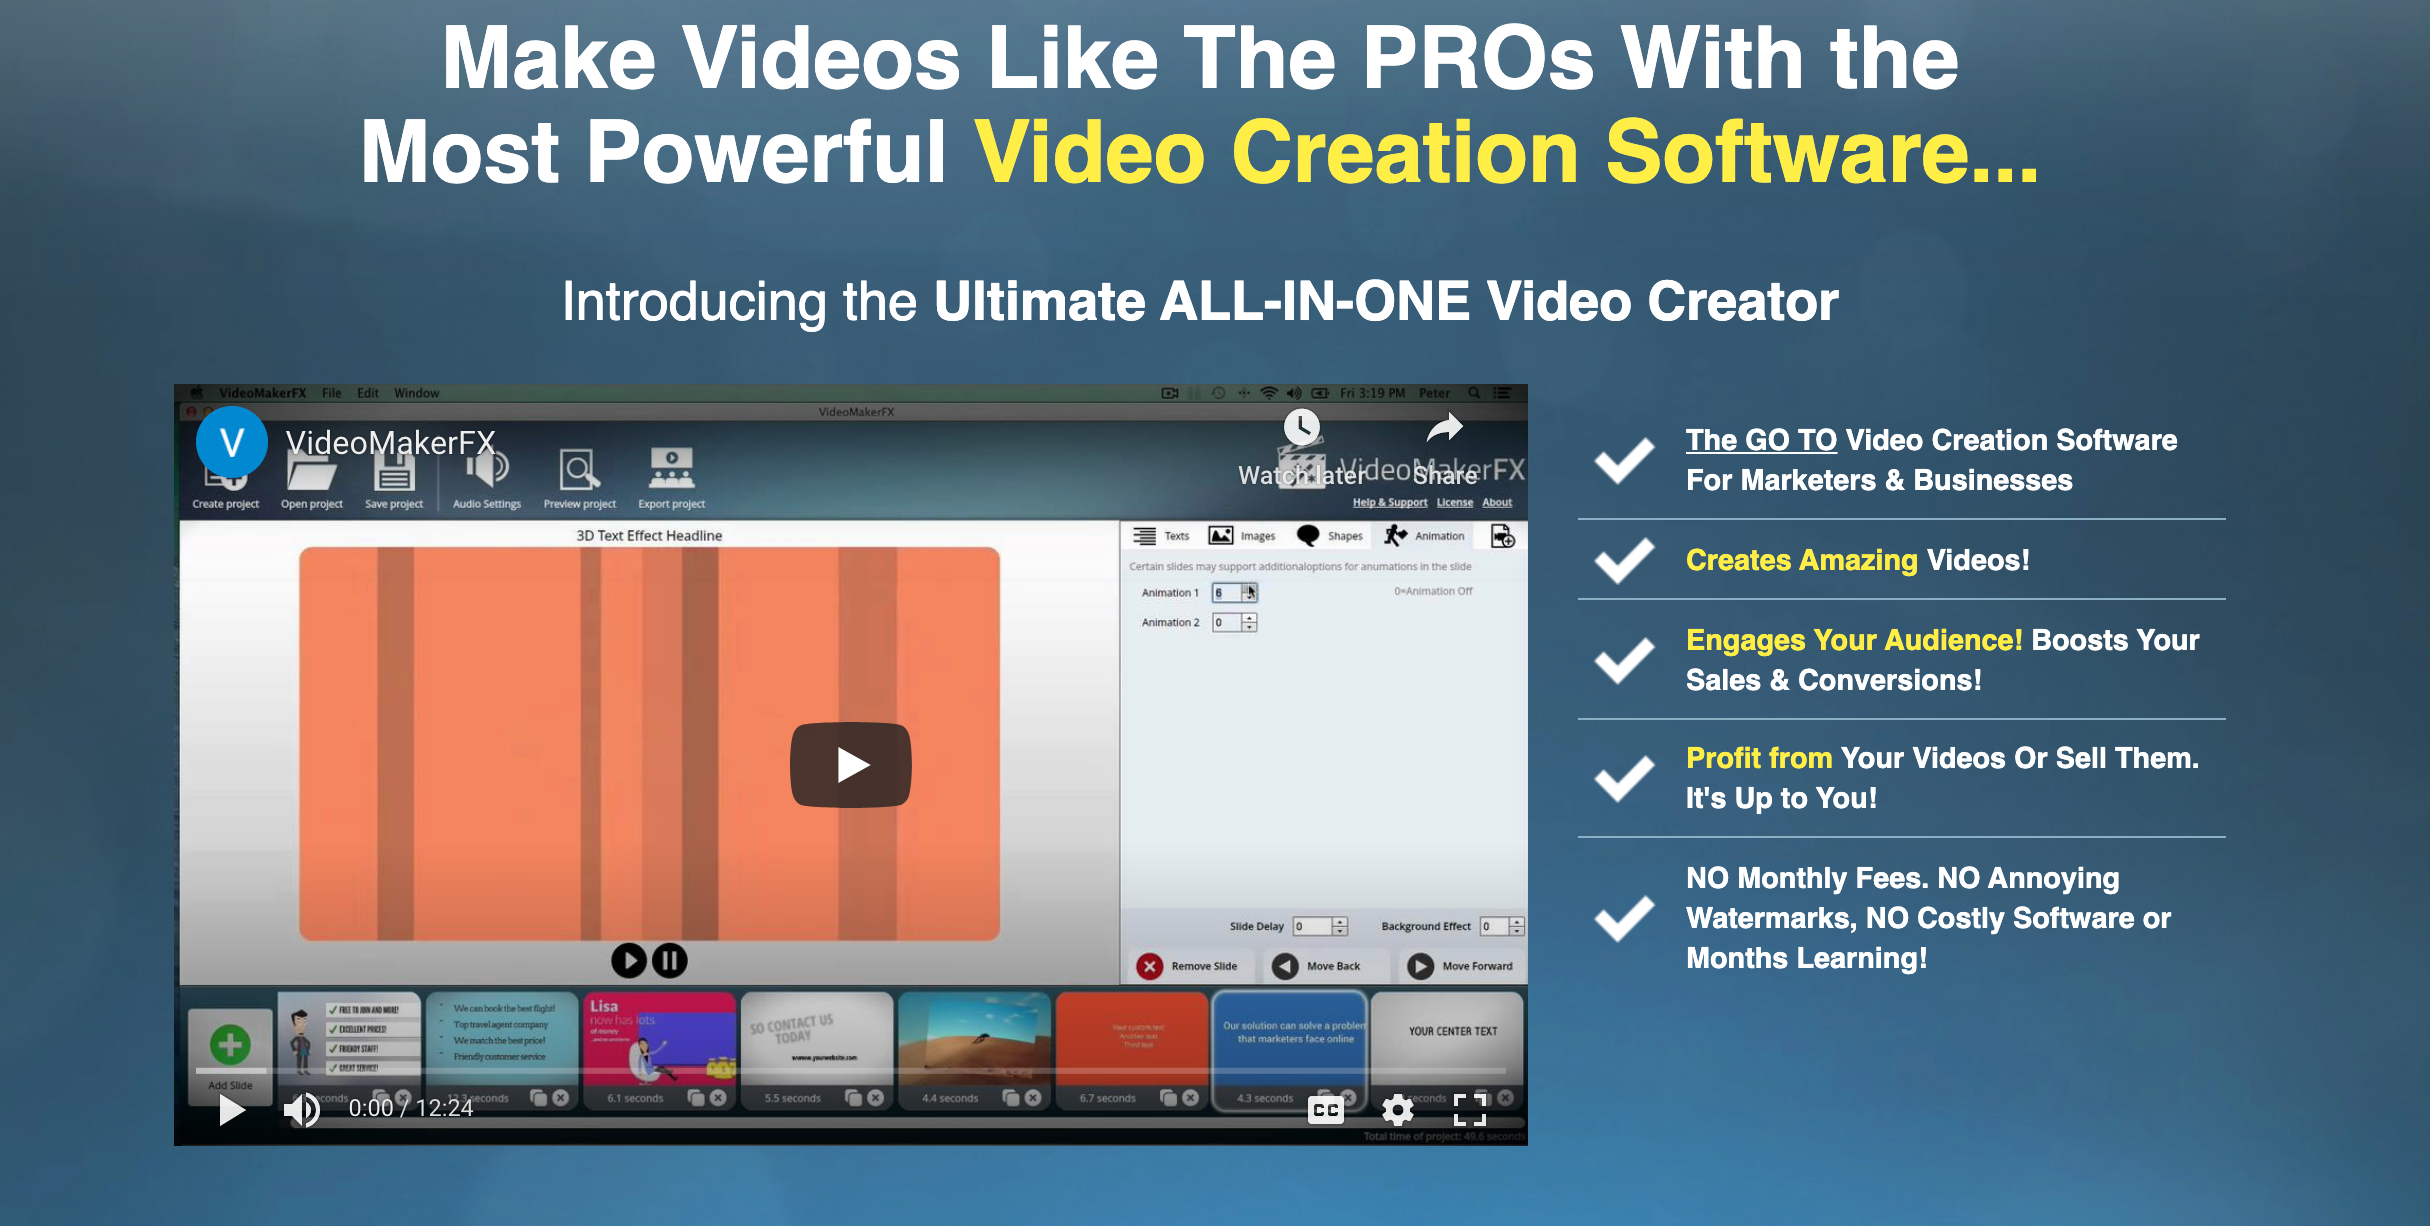 VideoMakerFX Review- Make Videos Like Pro